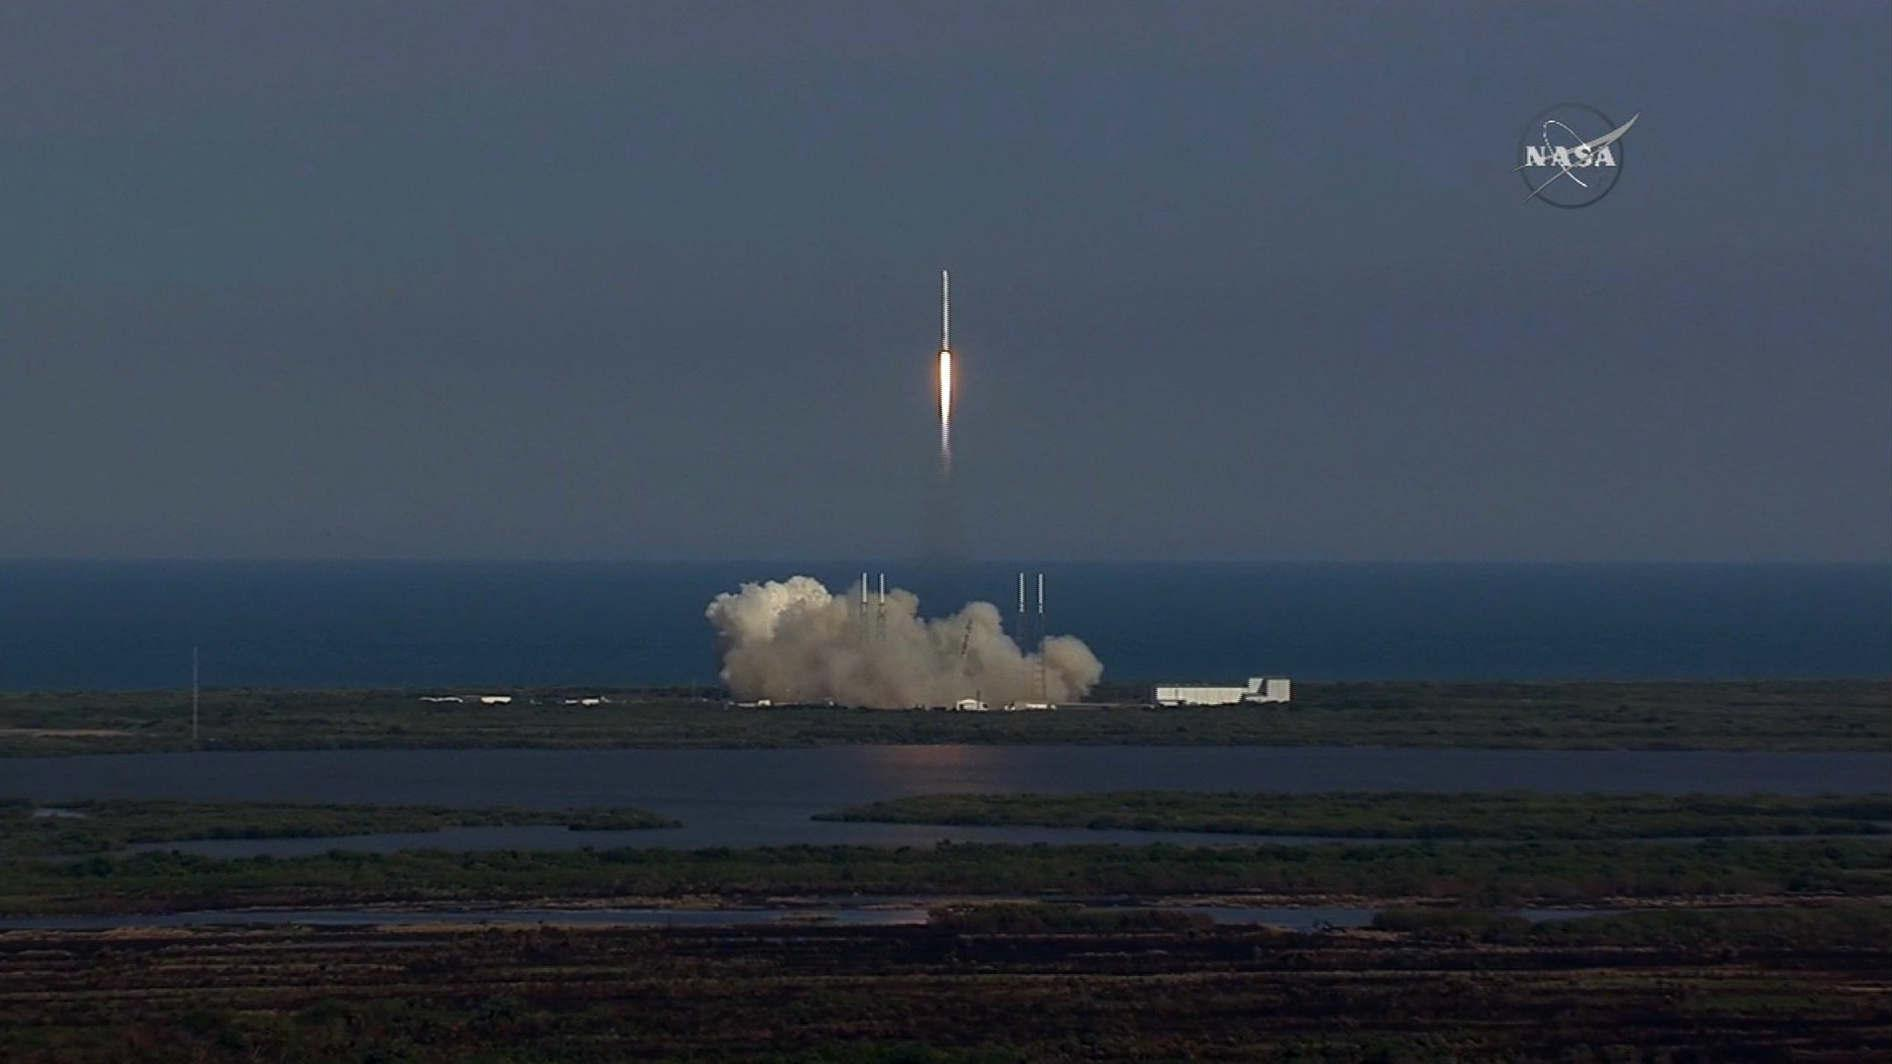 spacex manned mars mission - photo #19